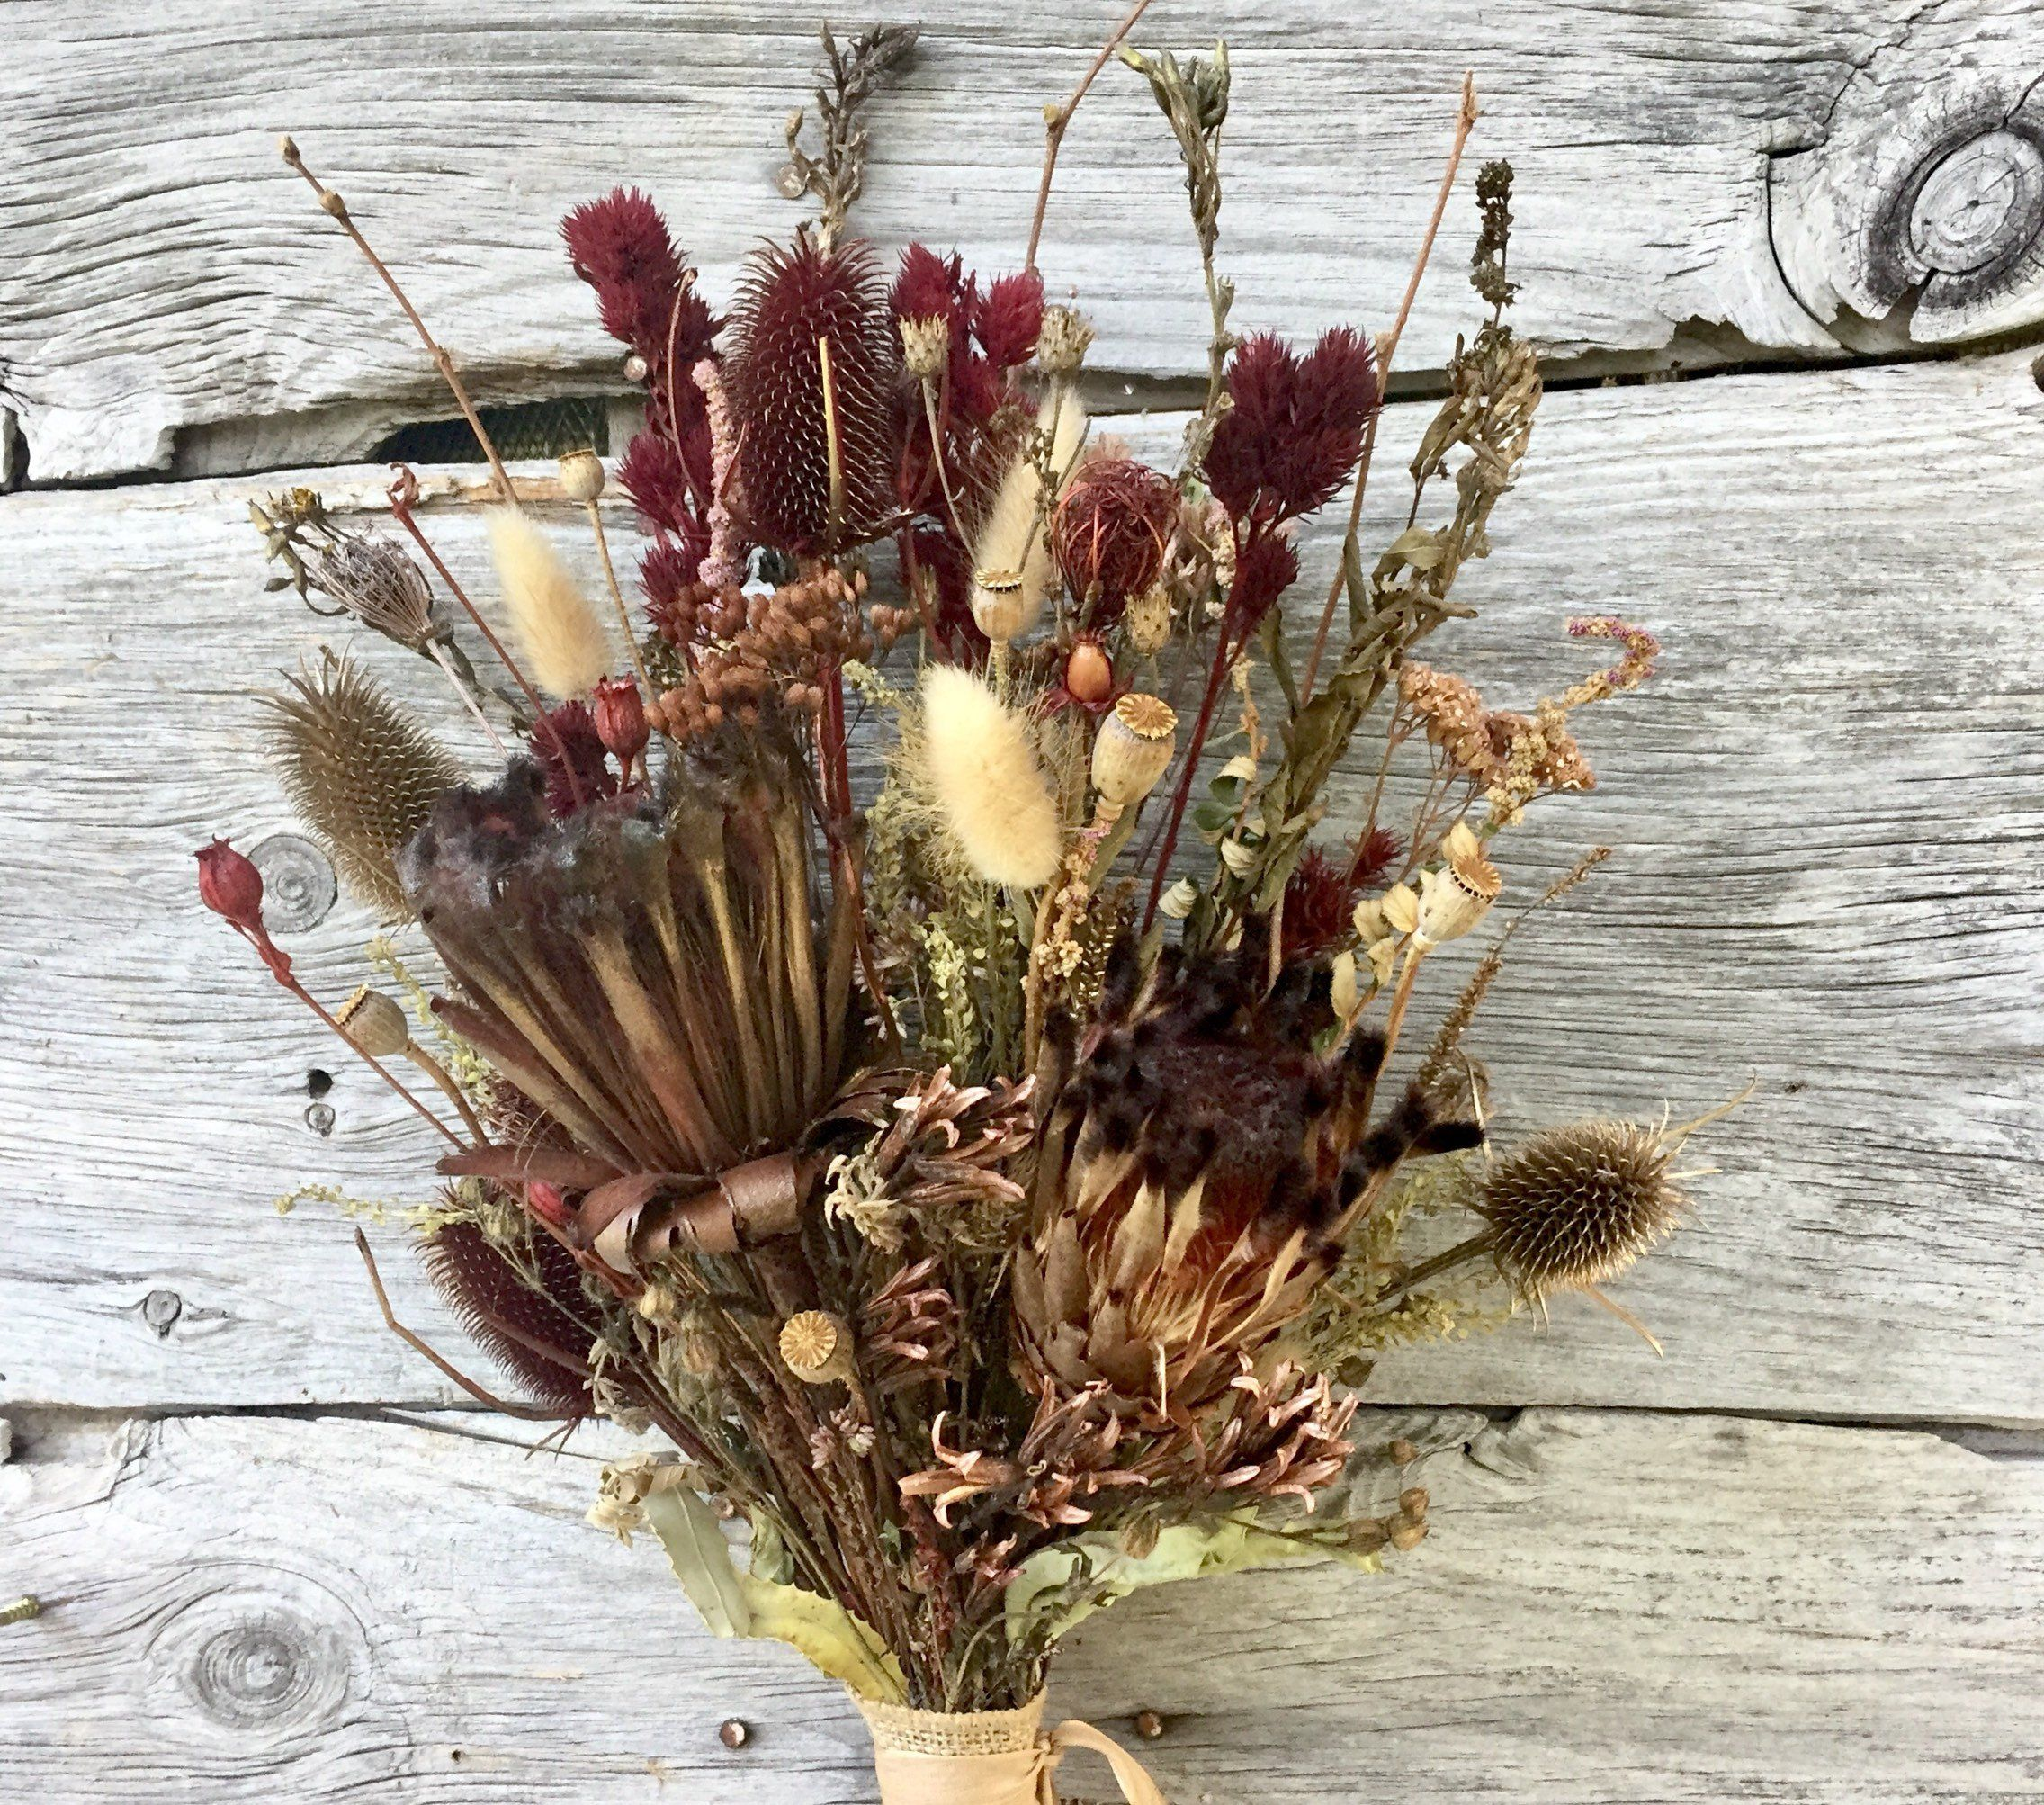 Vintage Protea Dried Flower Bouquet Burgundy Gold Bronze Blush Rose Brown Thistle Pods Dried Flowers Dried Flower Bouquet Flowers Bouquet